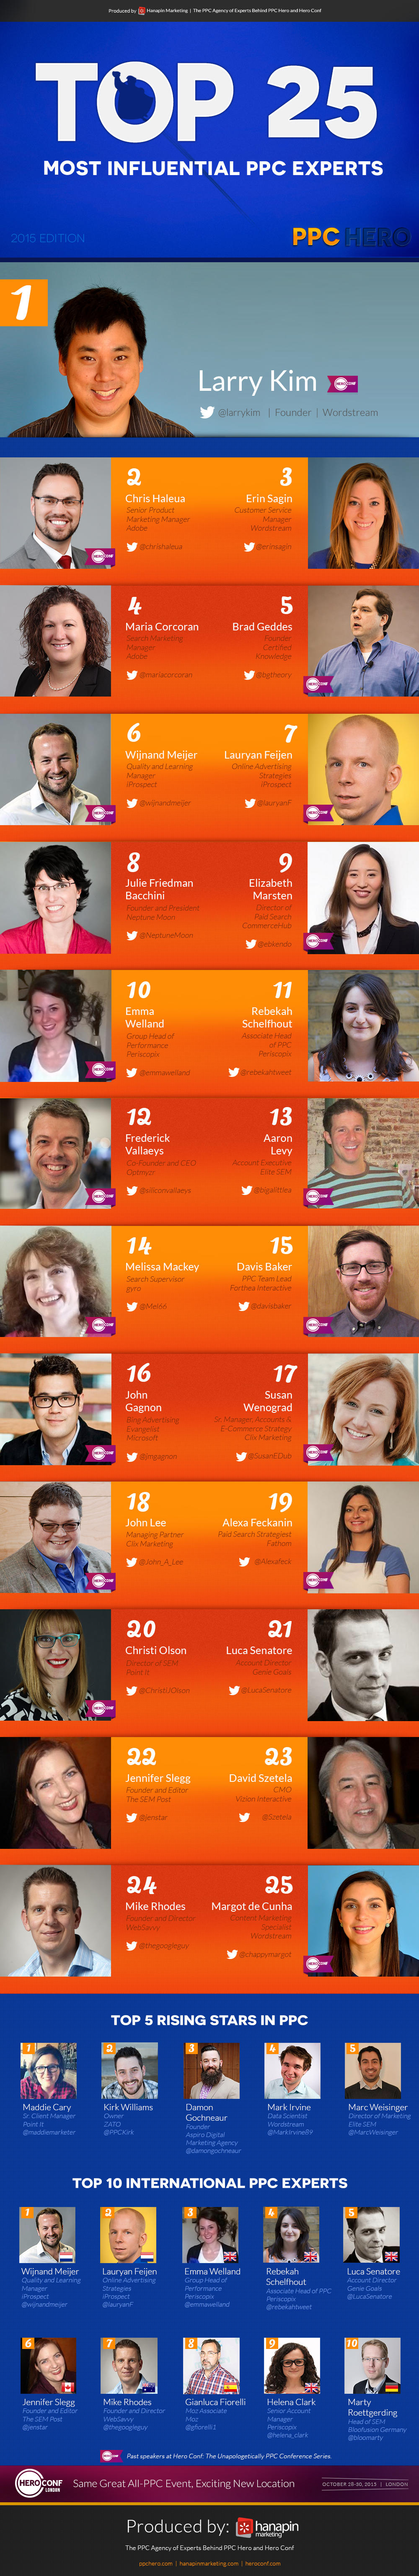 most influential ppc experts